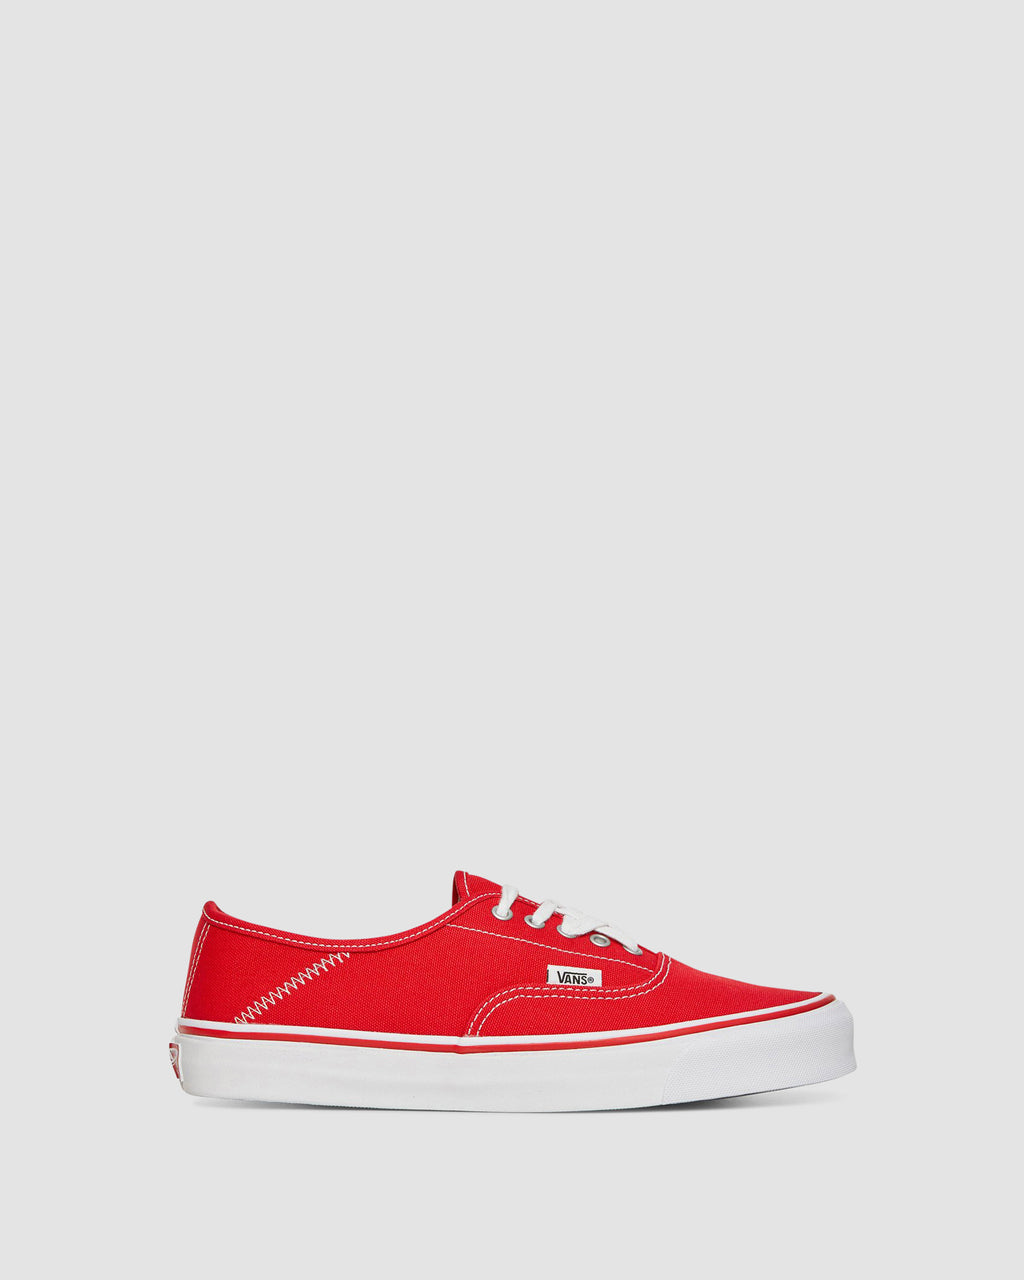 AA U SN 0002 0 36 VANS OG STYLE 43 AUTHENTIC FOLD DOWN TRUE RED